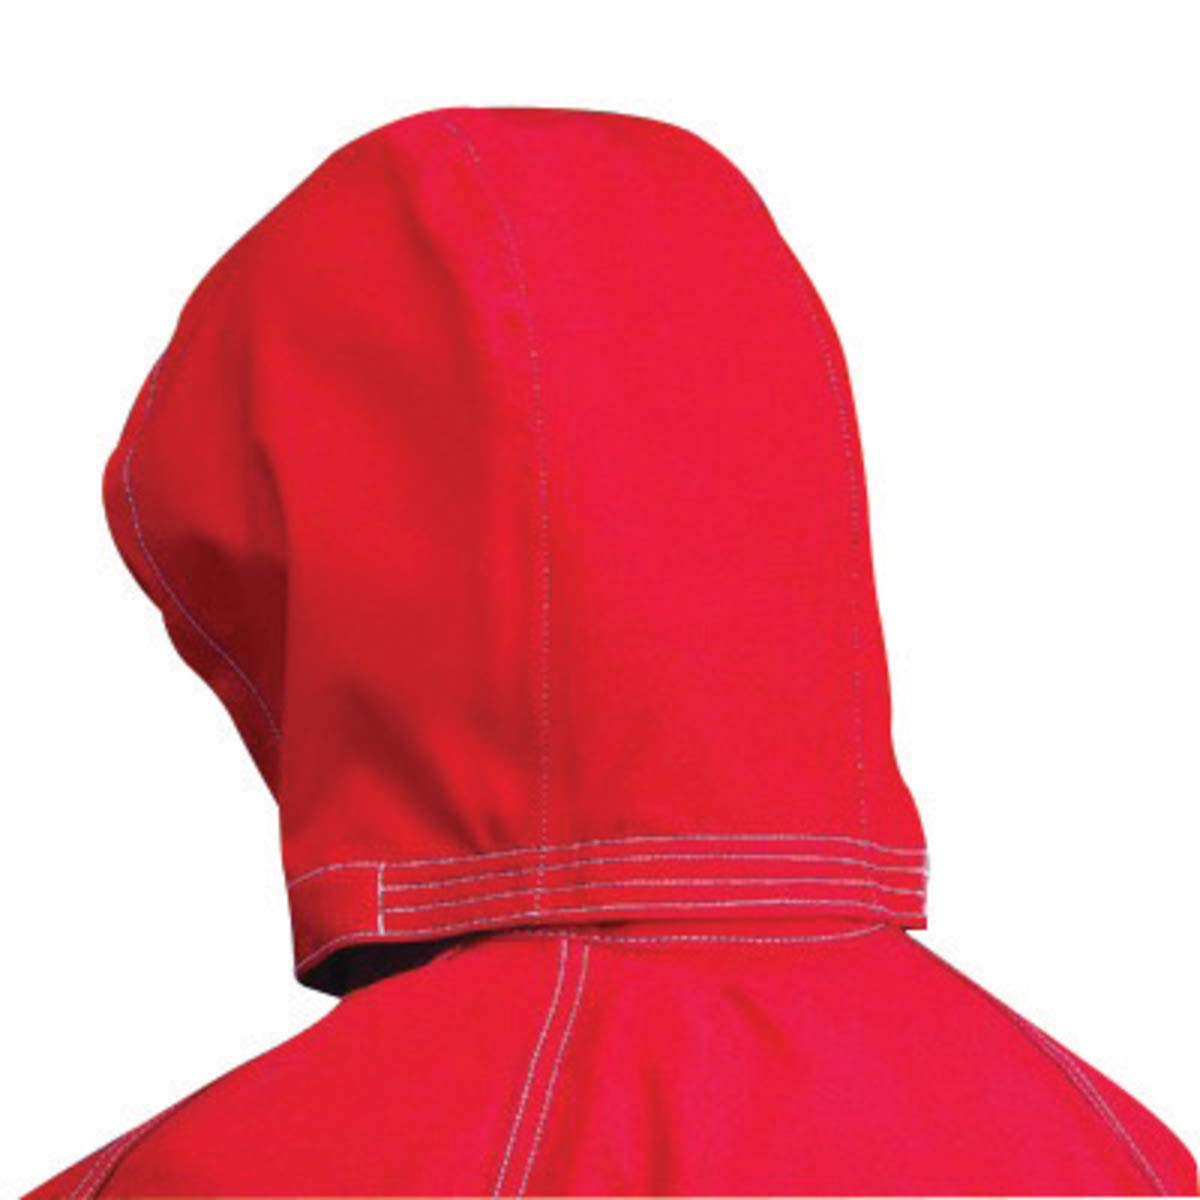 Ansell One Size Fits All Red Sawyer-Tower CPC Polyester Trilaminate Gore Fabric 3-Piece Chemical Splash Protection Hood by ANSELL (Image #1)